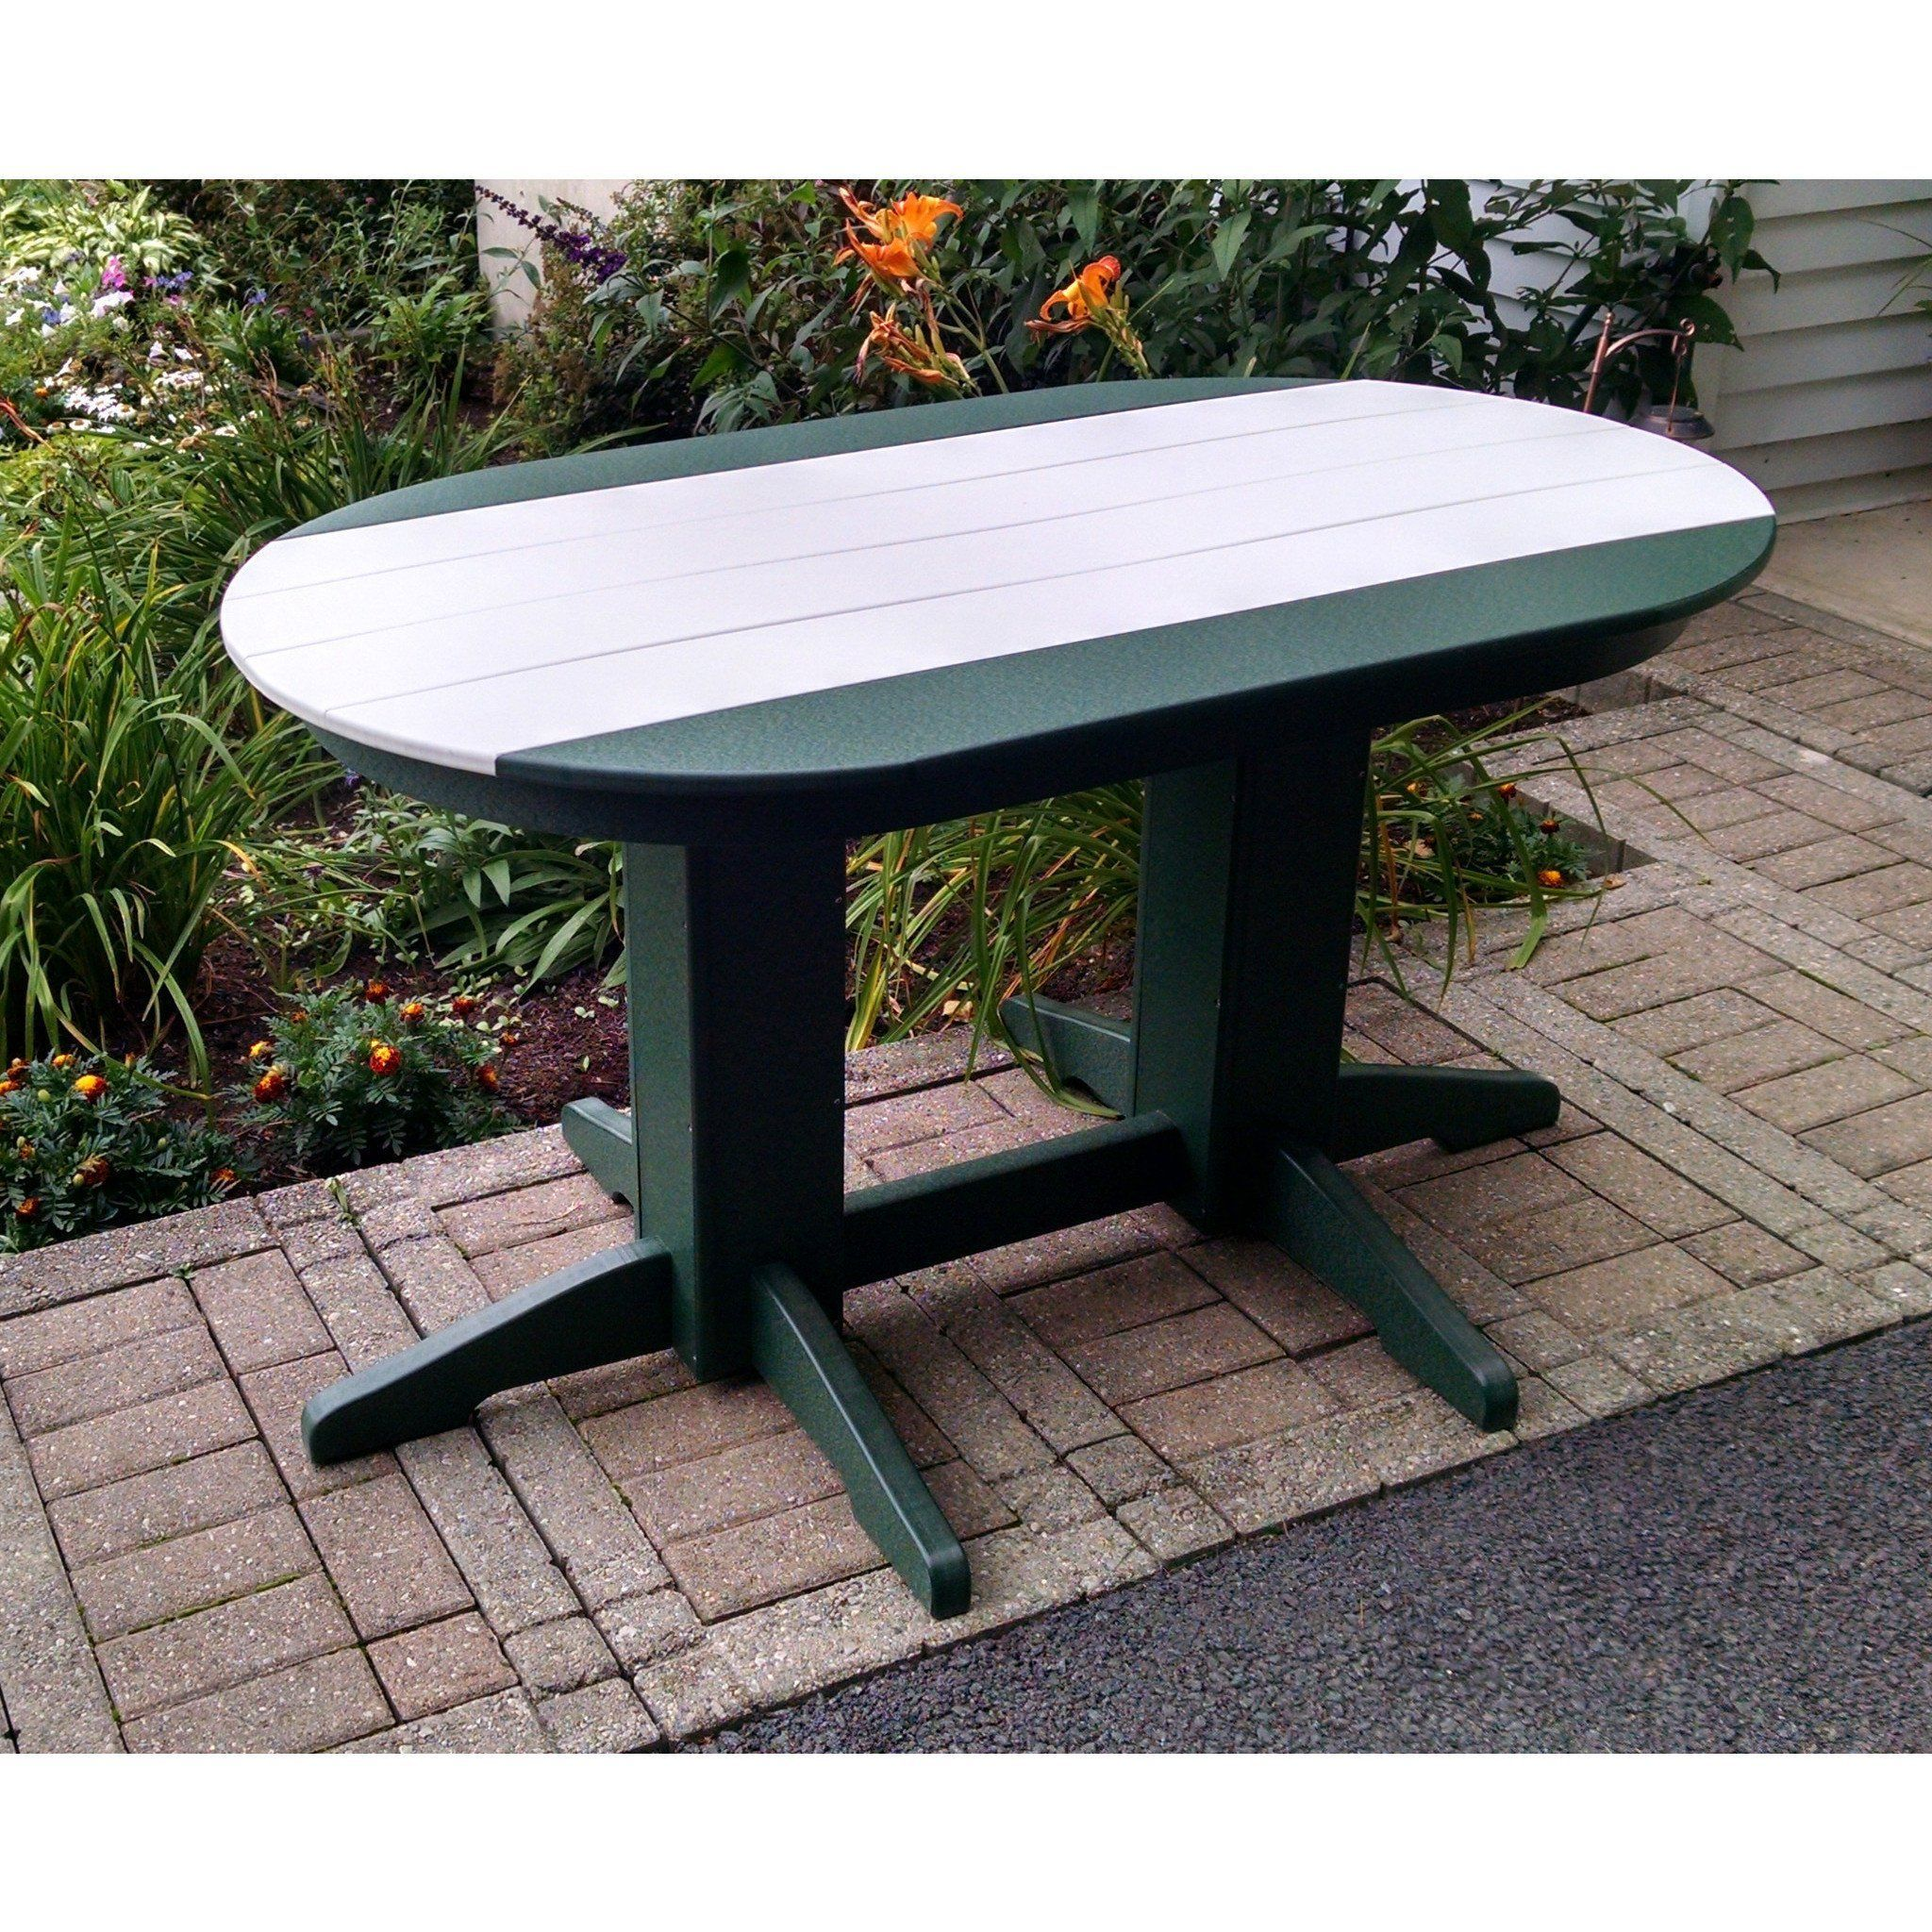 A L Furniture Company Recycled Plastic 5 Oval Dining Table